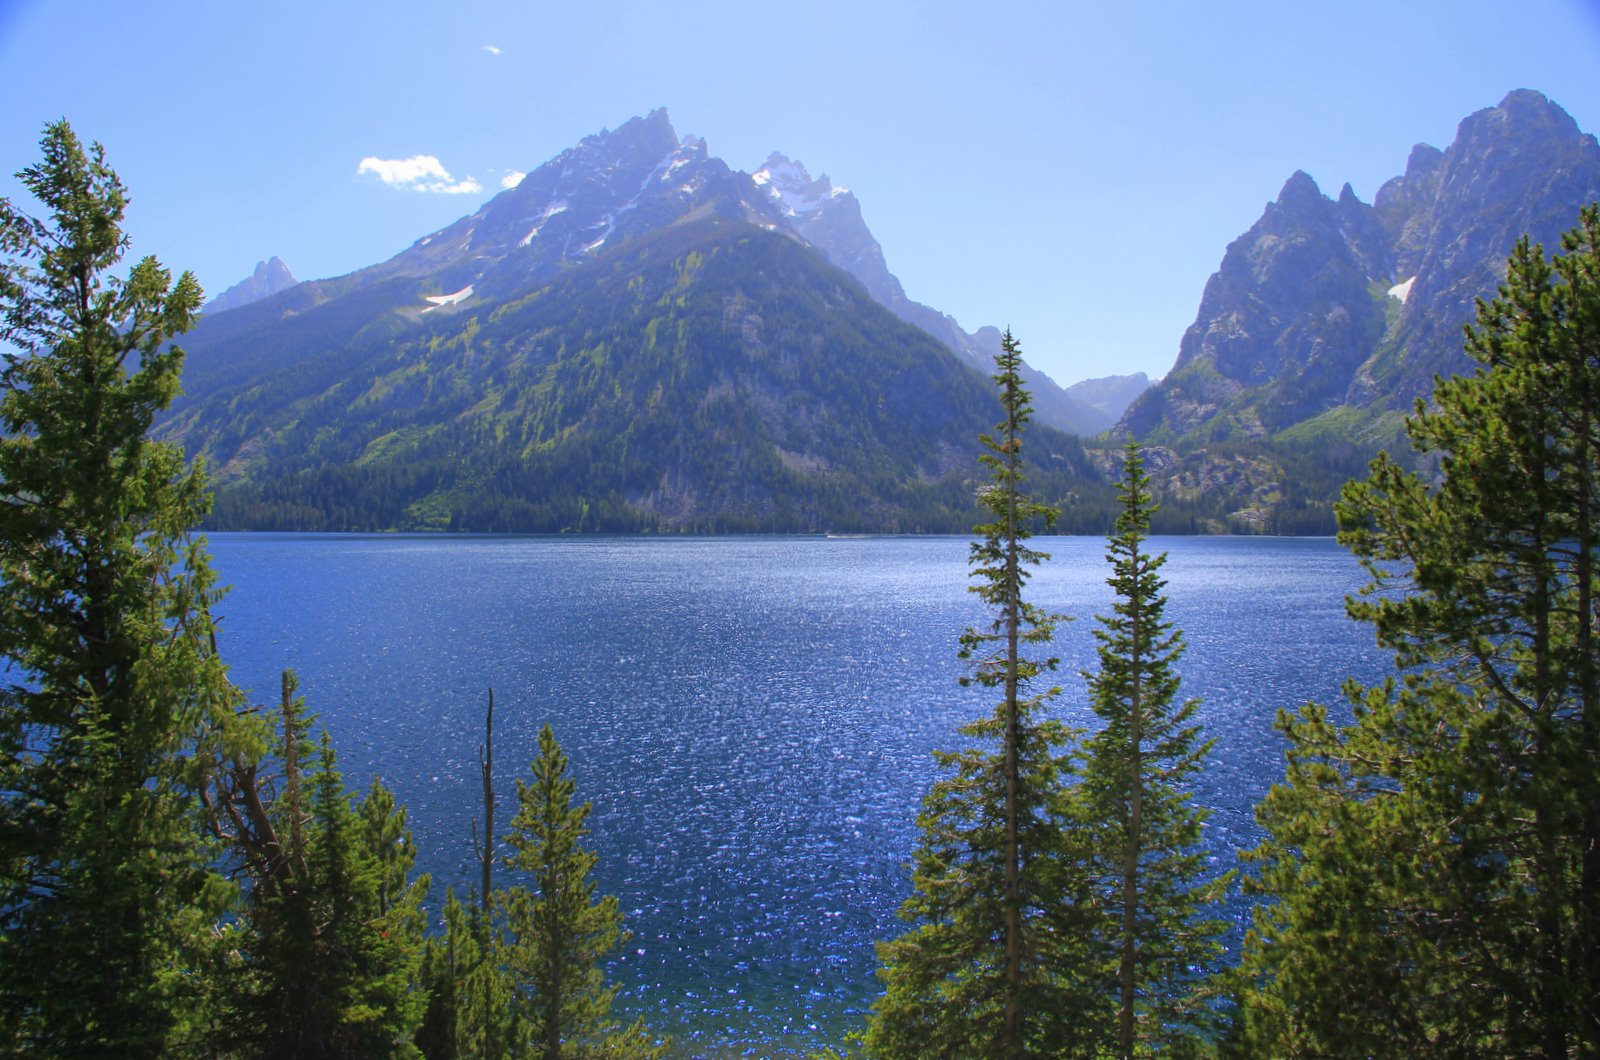 G is for Grand Teton – Yamanashi Kei |Jenny Lake Grand Teton National Park